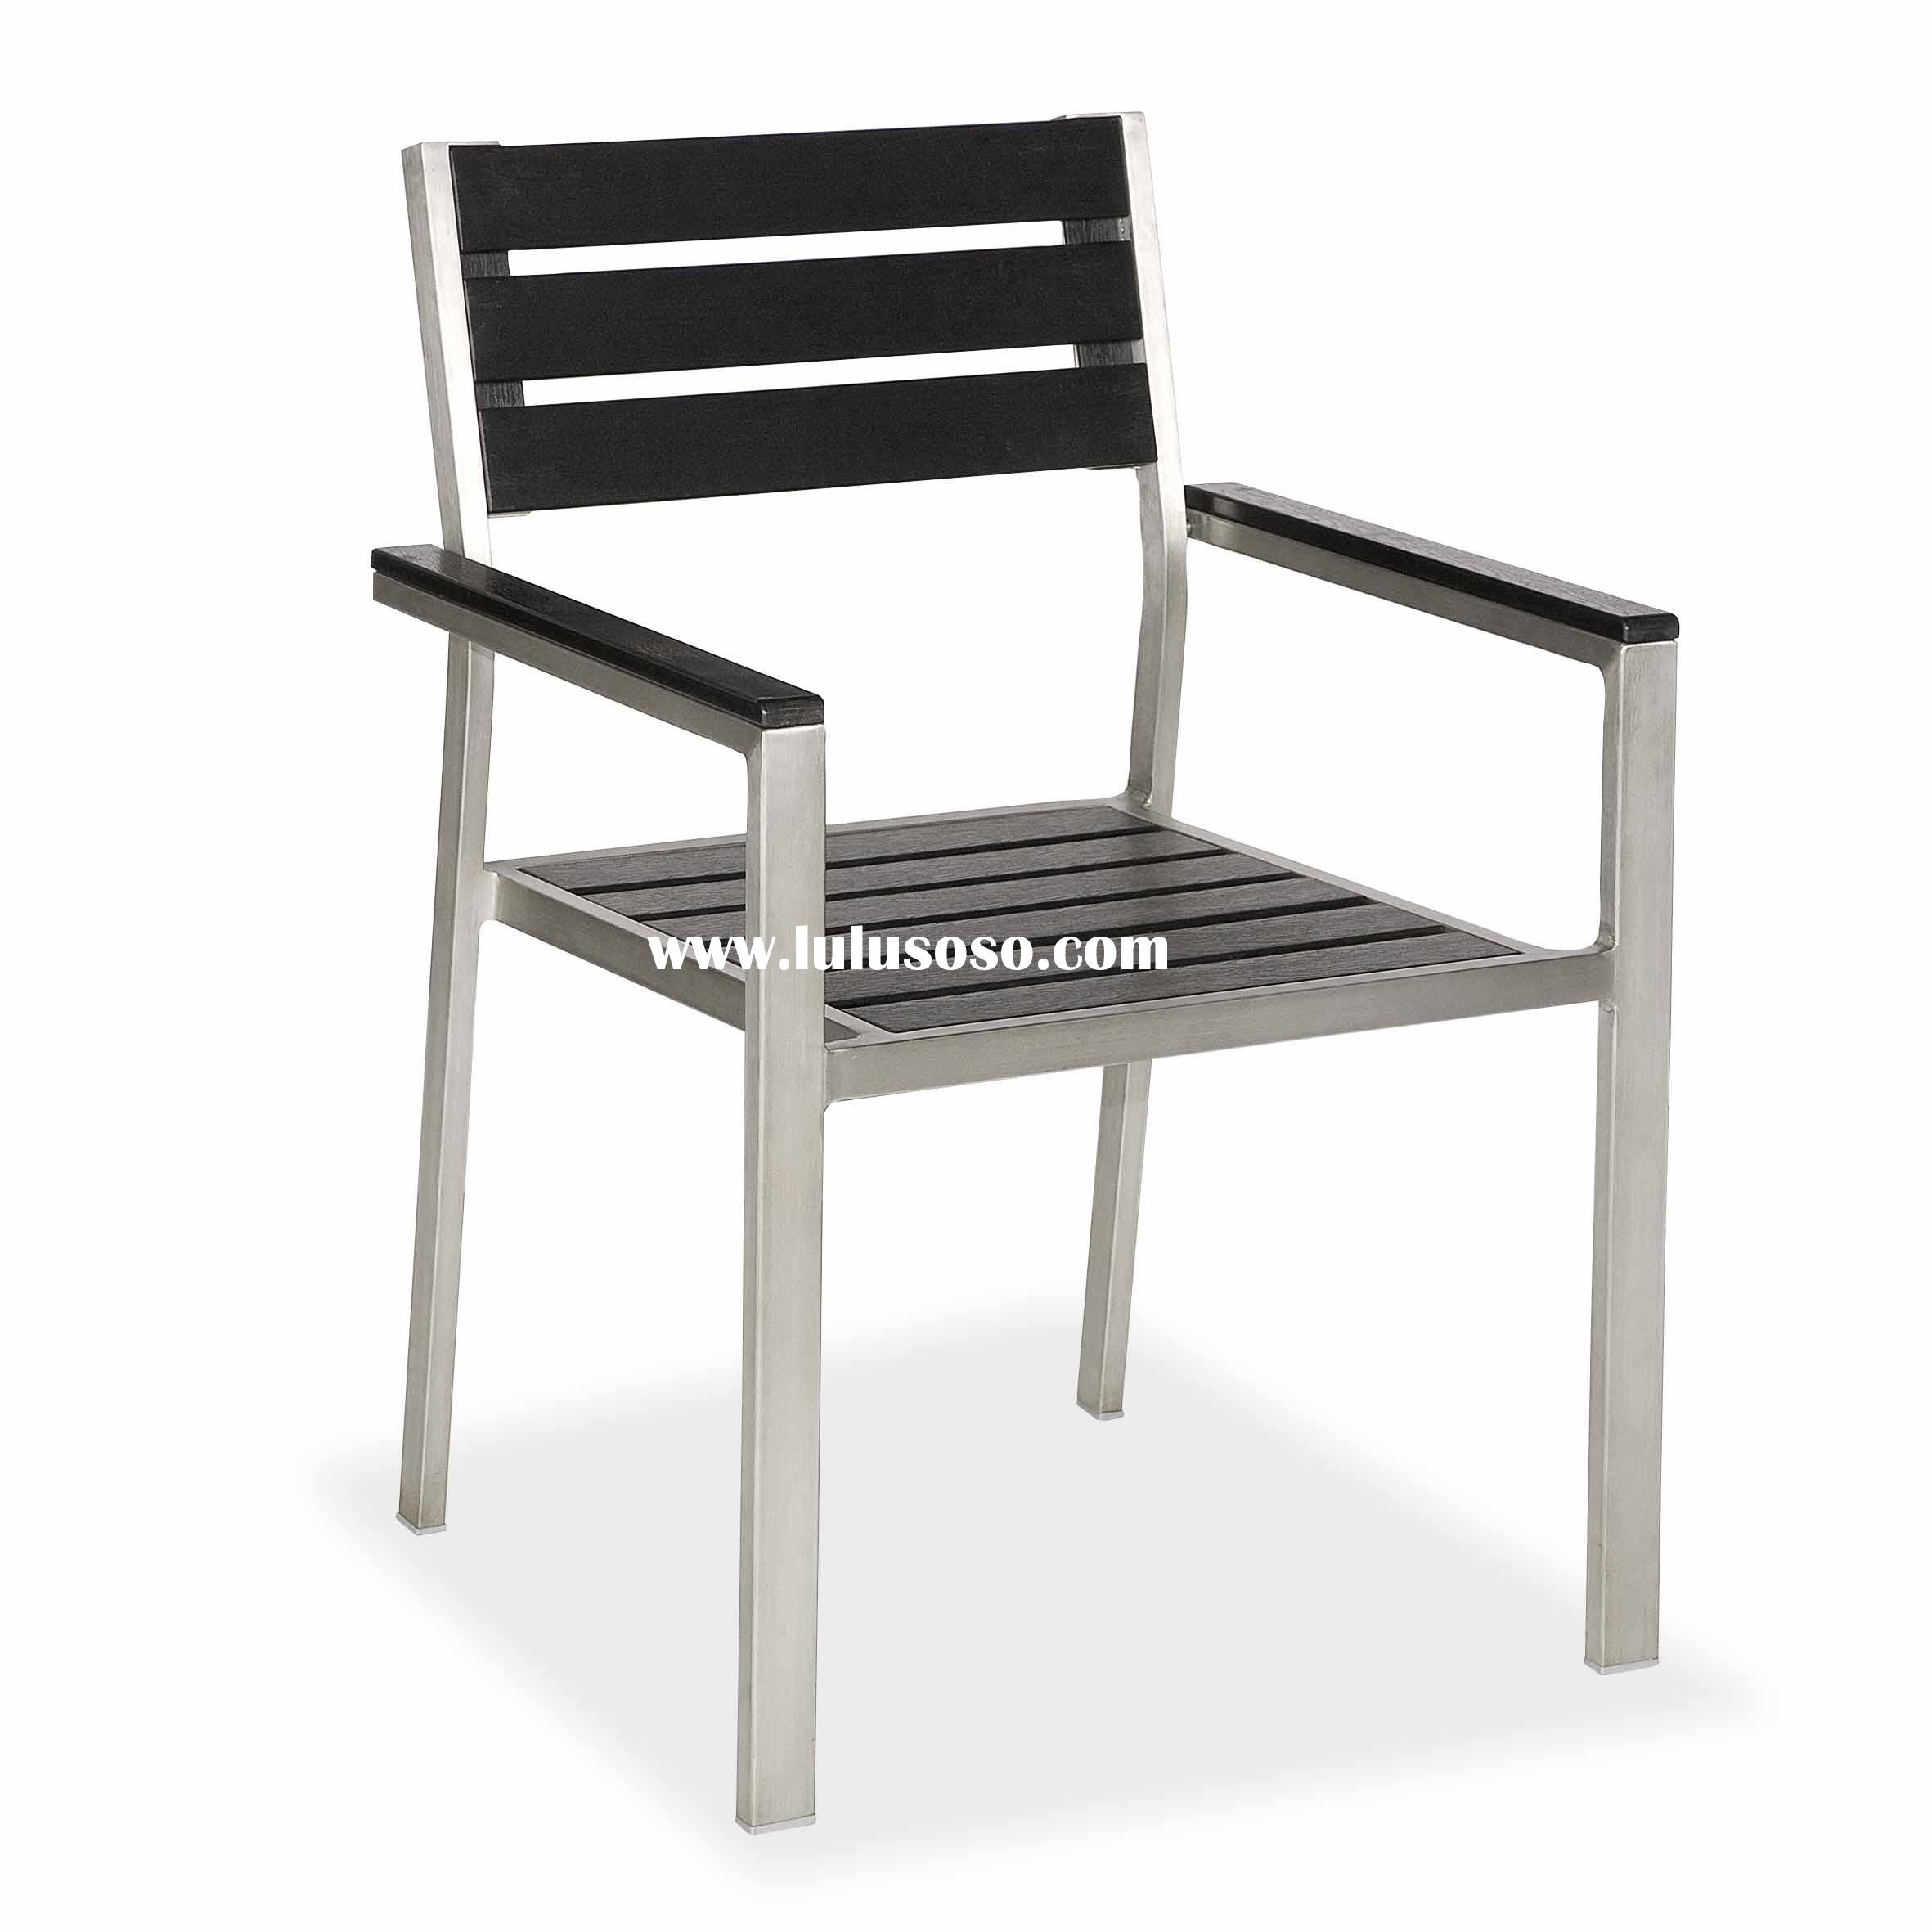 metal frame chairs dorm steel chair manufacturers in